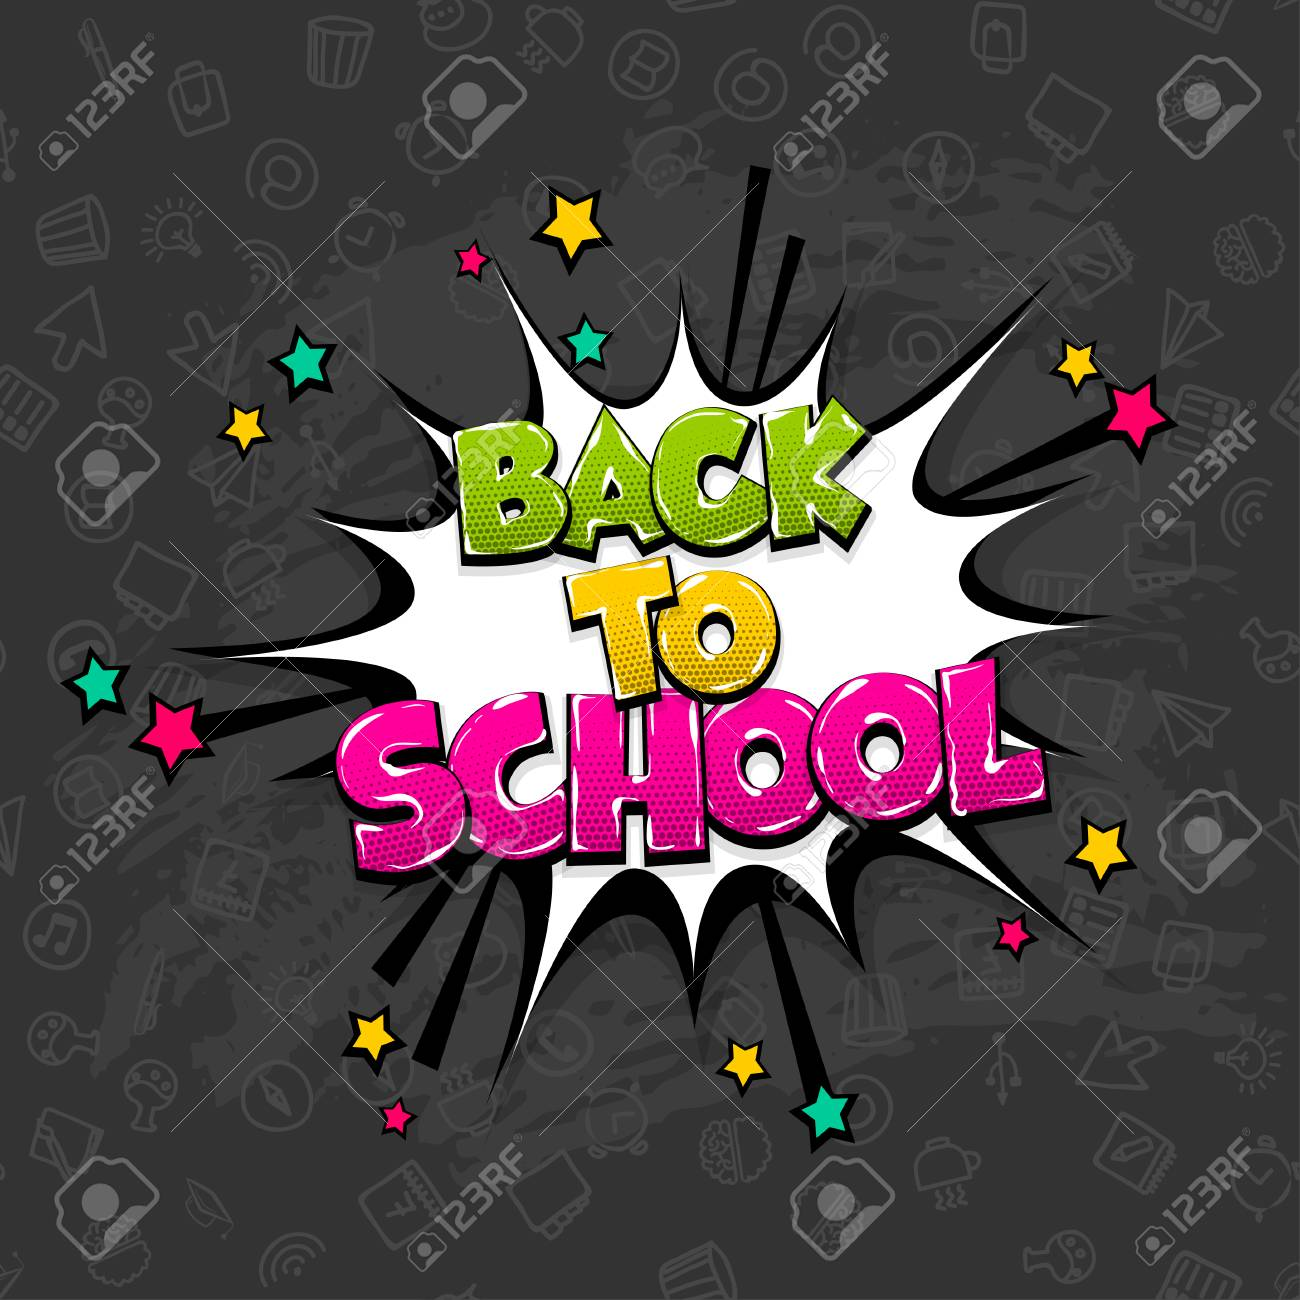 Back to school comic text pop art  Funny sound effect advertise